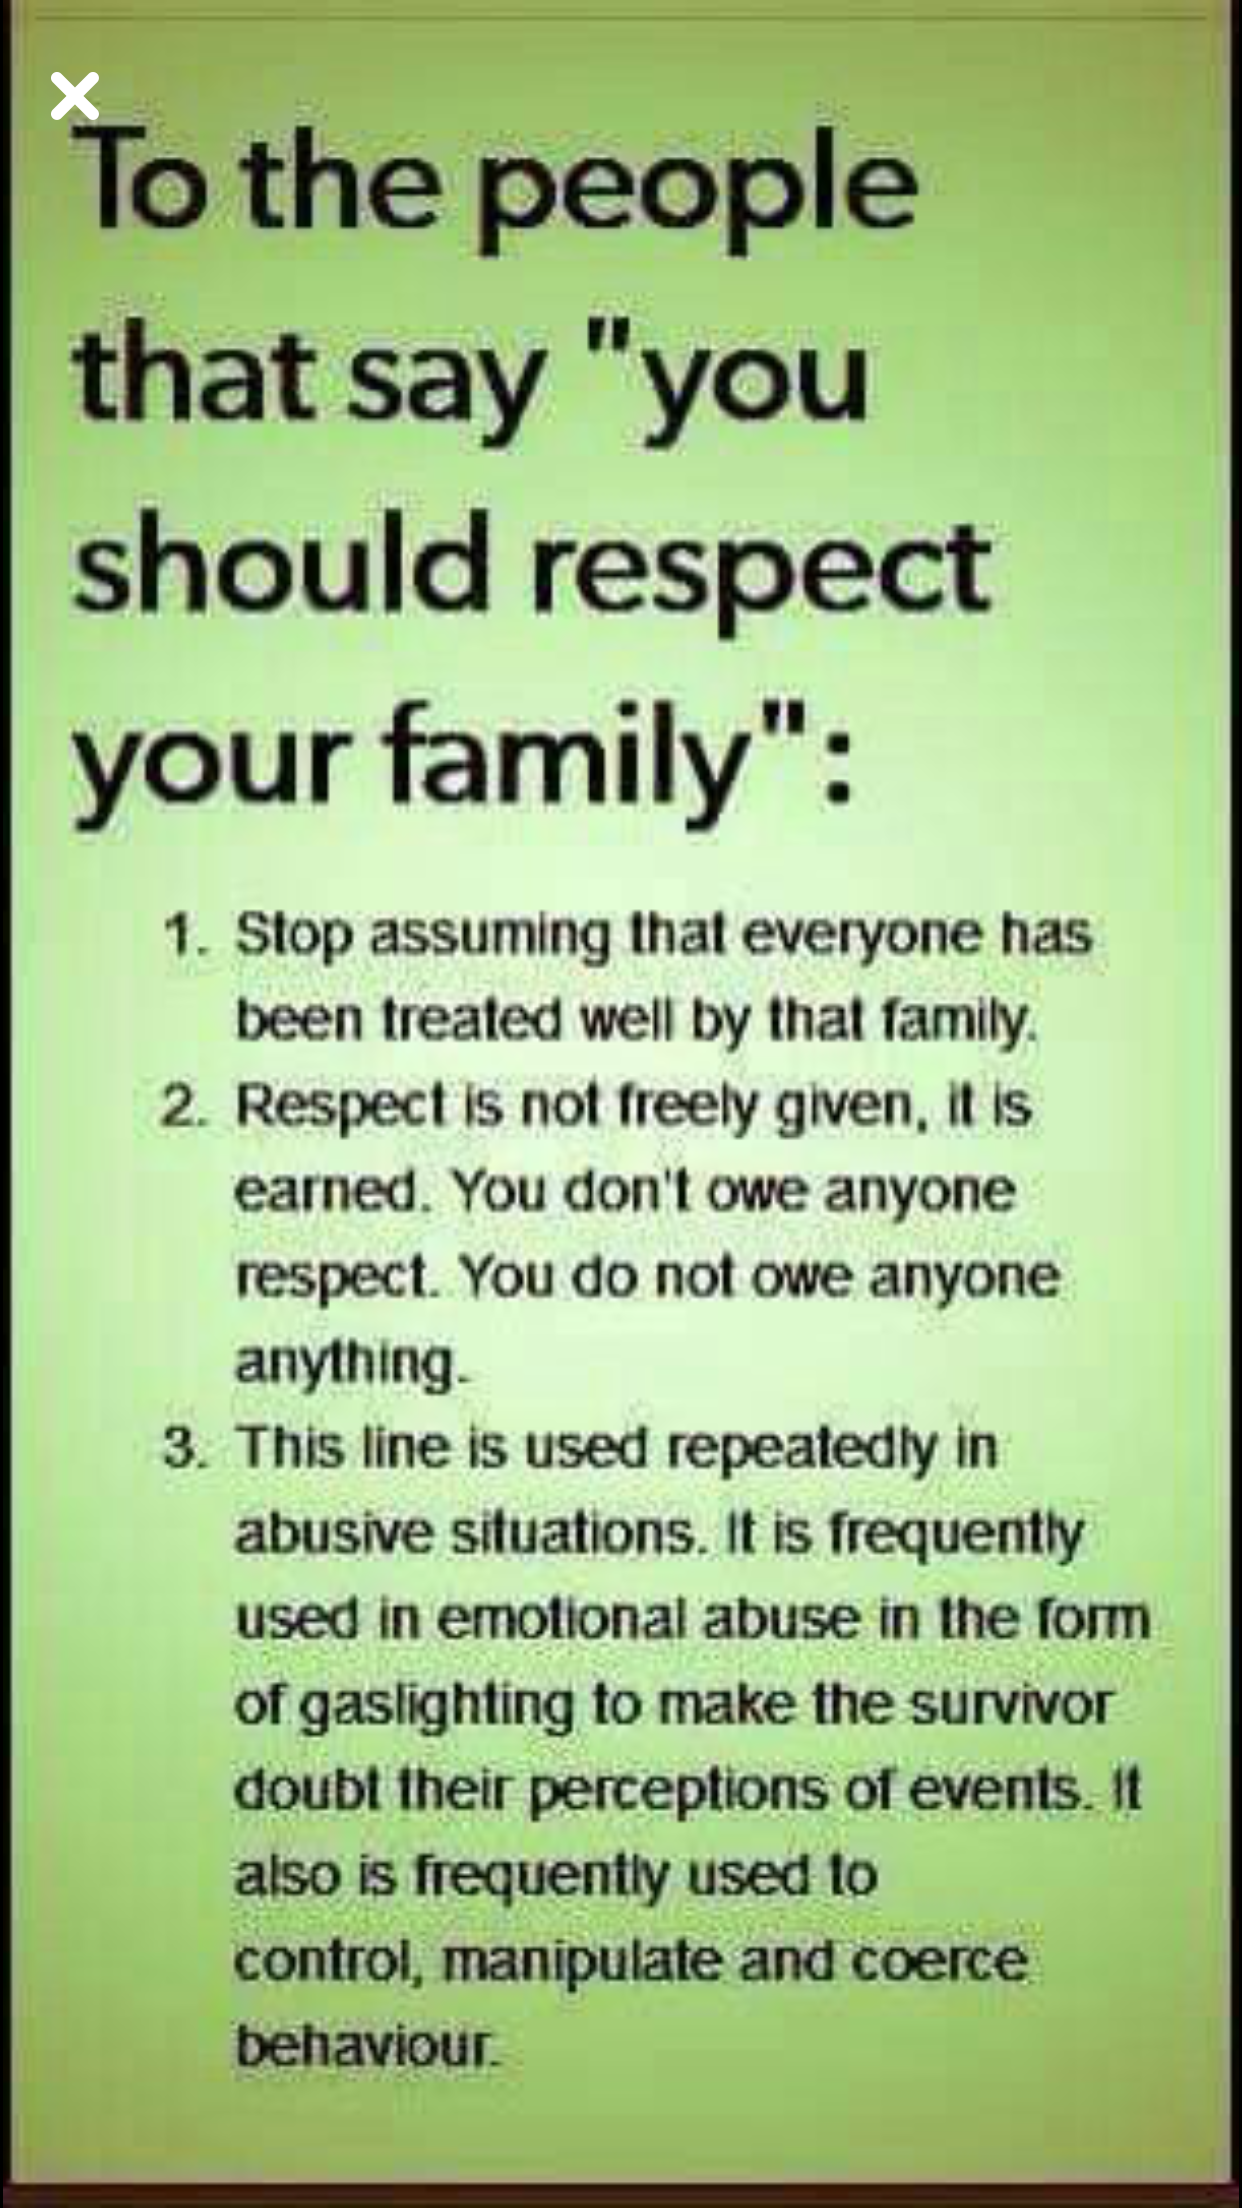 Dysfunctional family: do not be indifferent